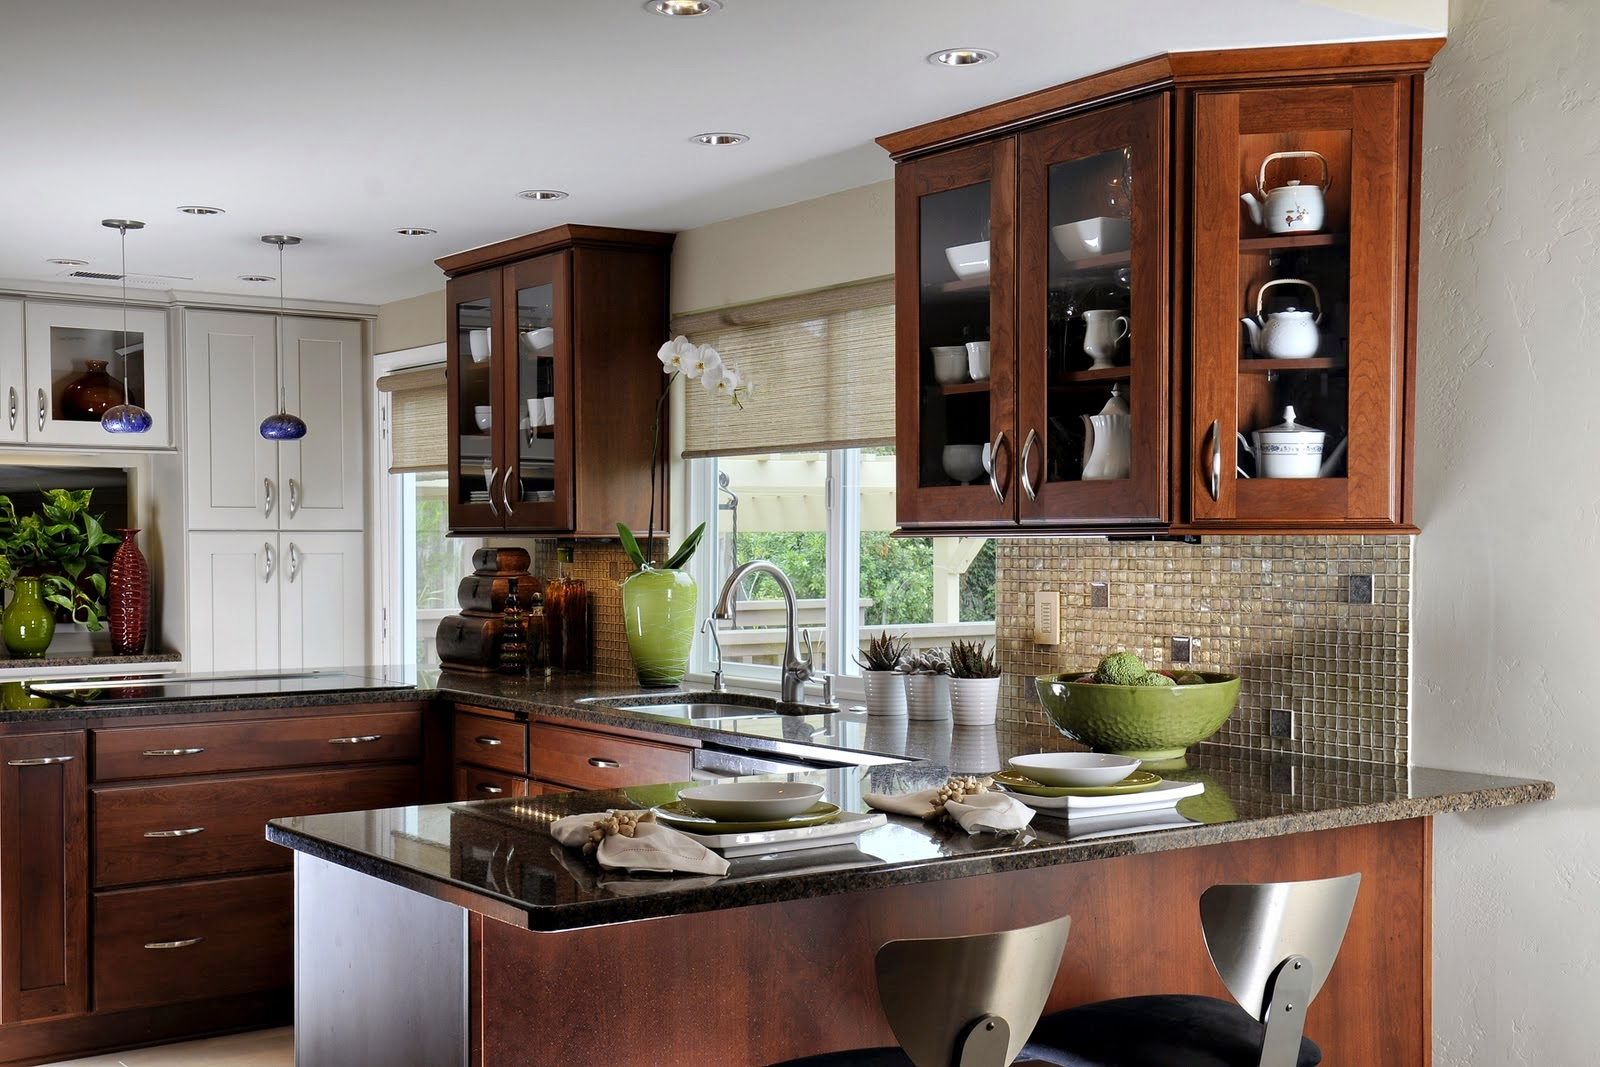 Kitchen Wooden Kitchen Sets For Stunning Small Kitchen Remodel Ideas